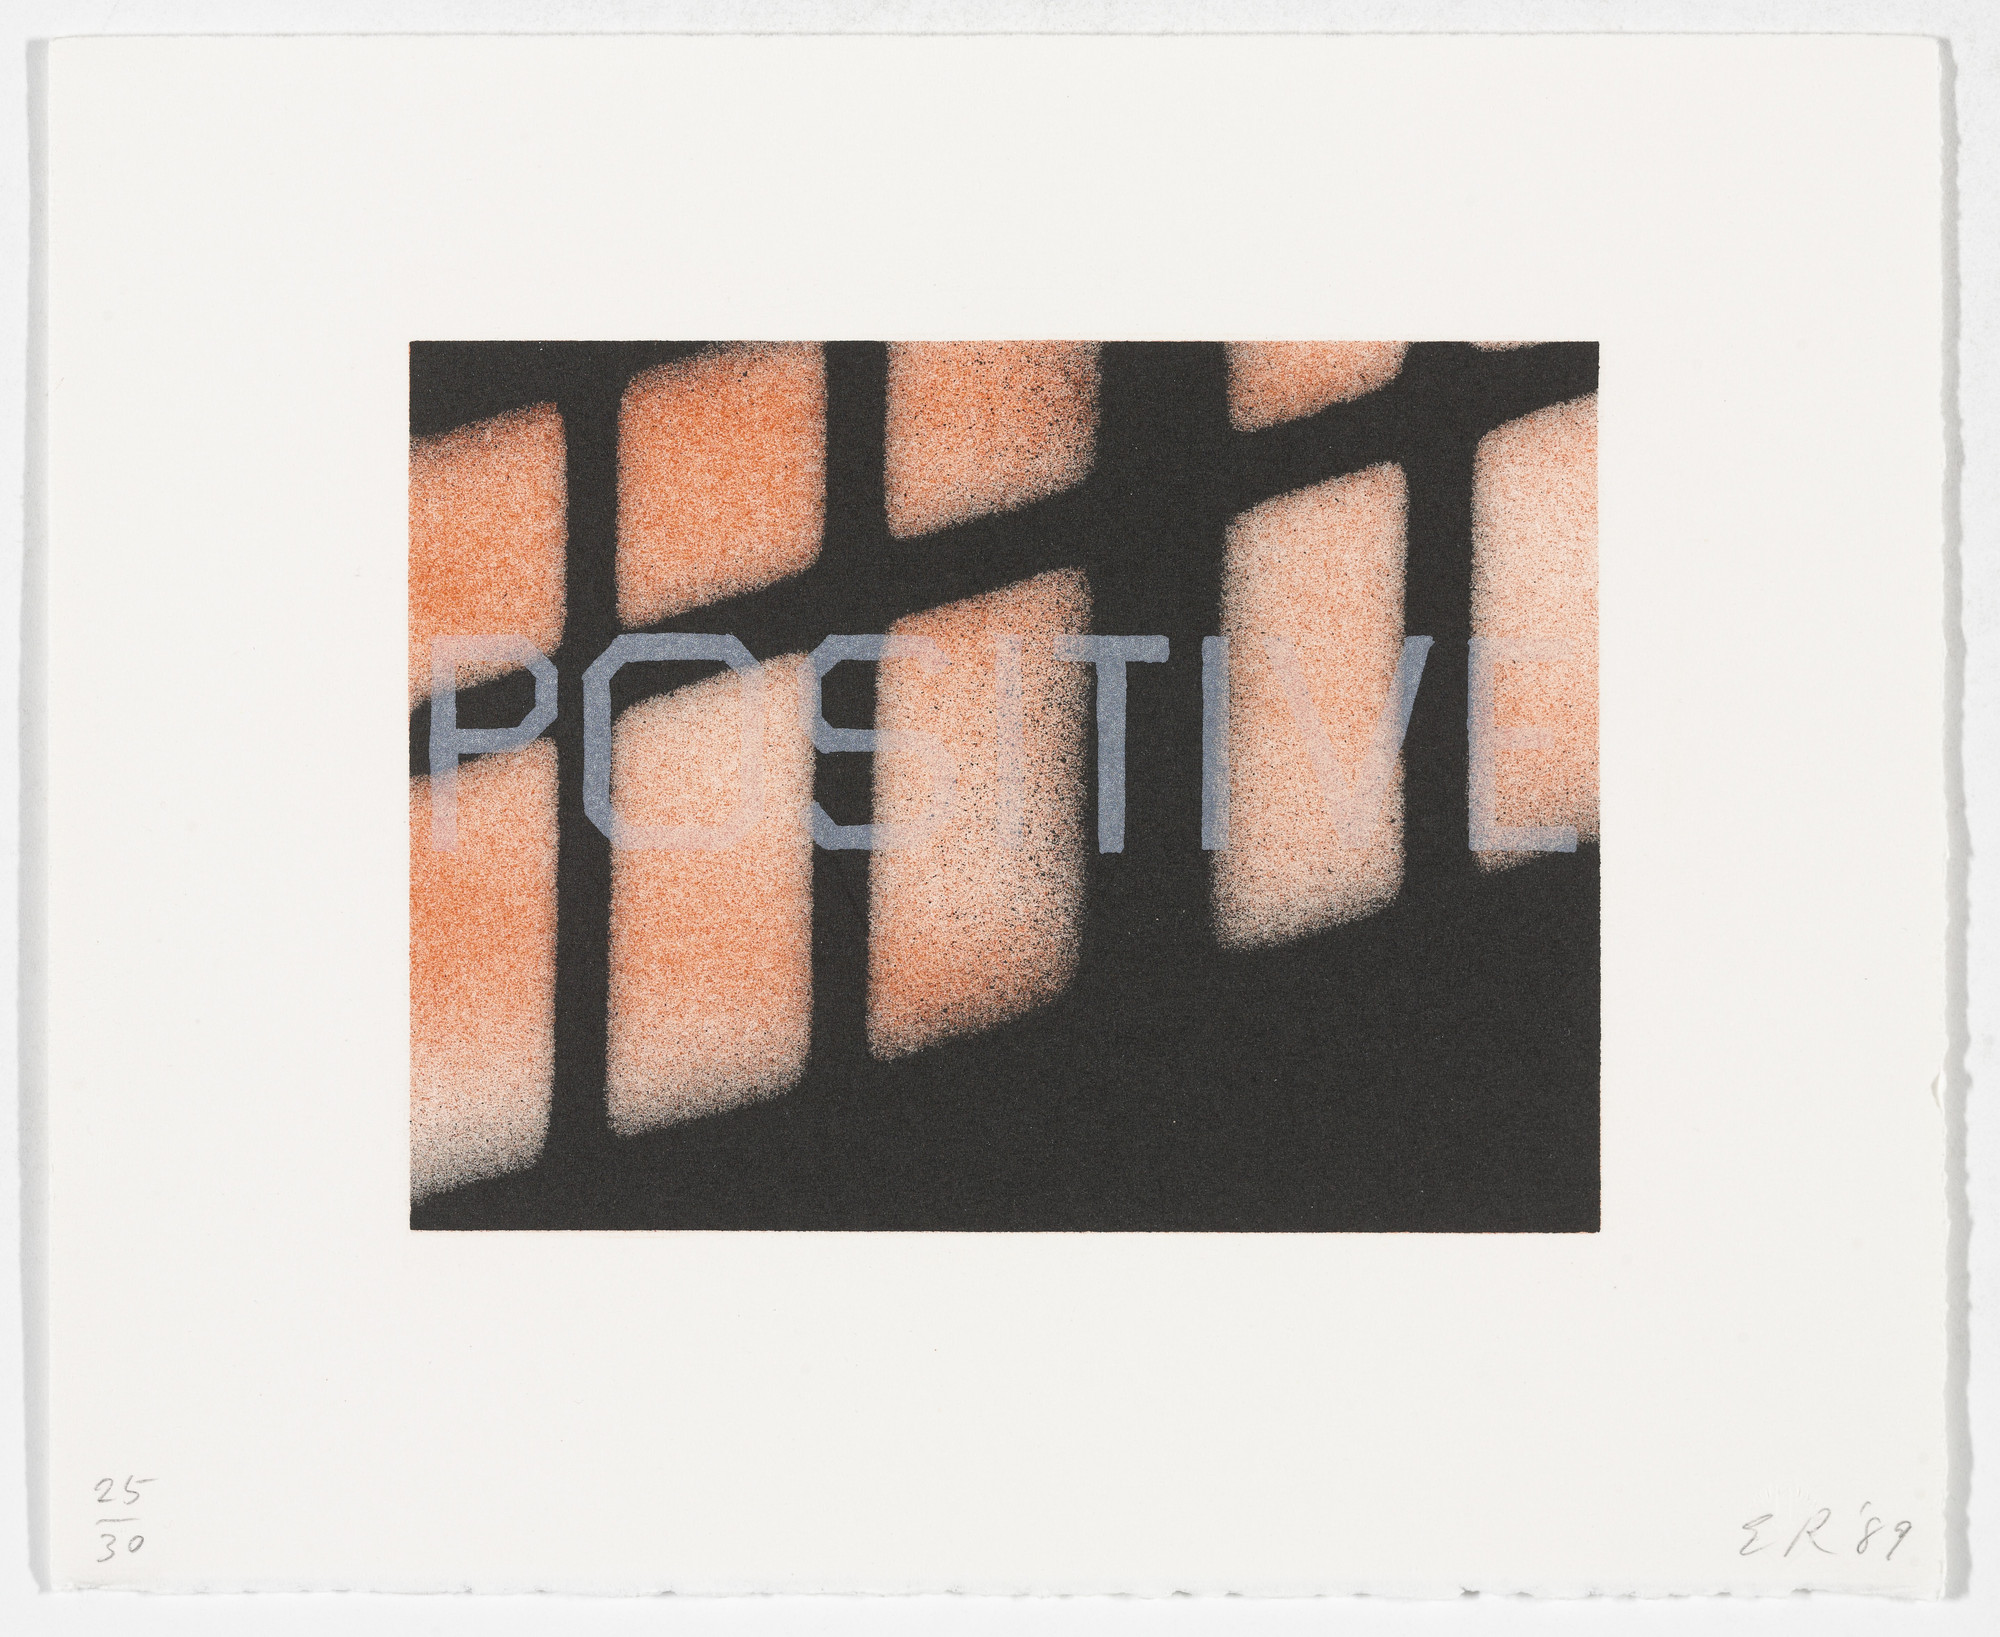 Edward Ruscha. Positive from That Is Right And Other Similarities. 1989